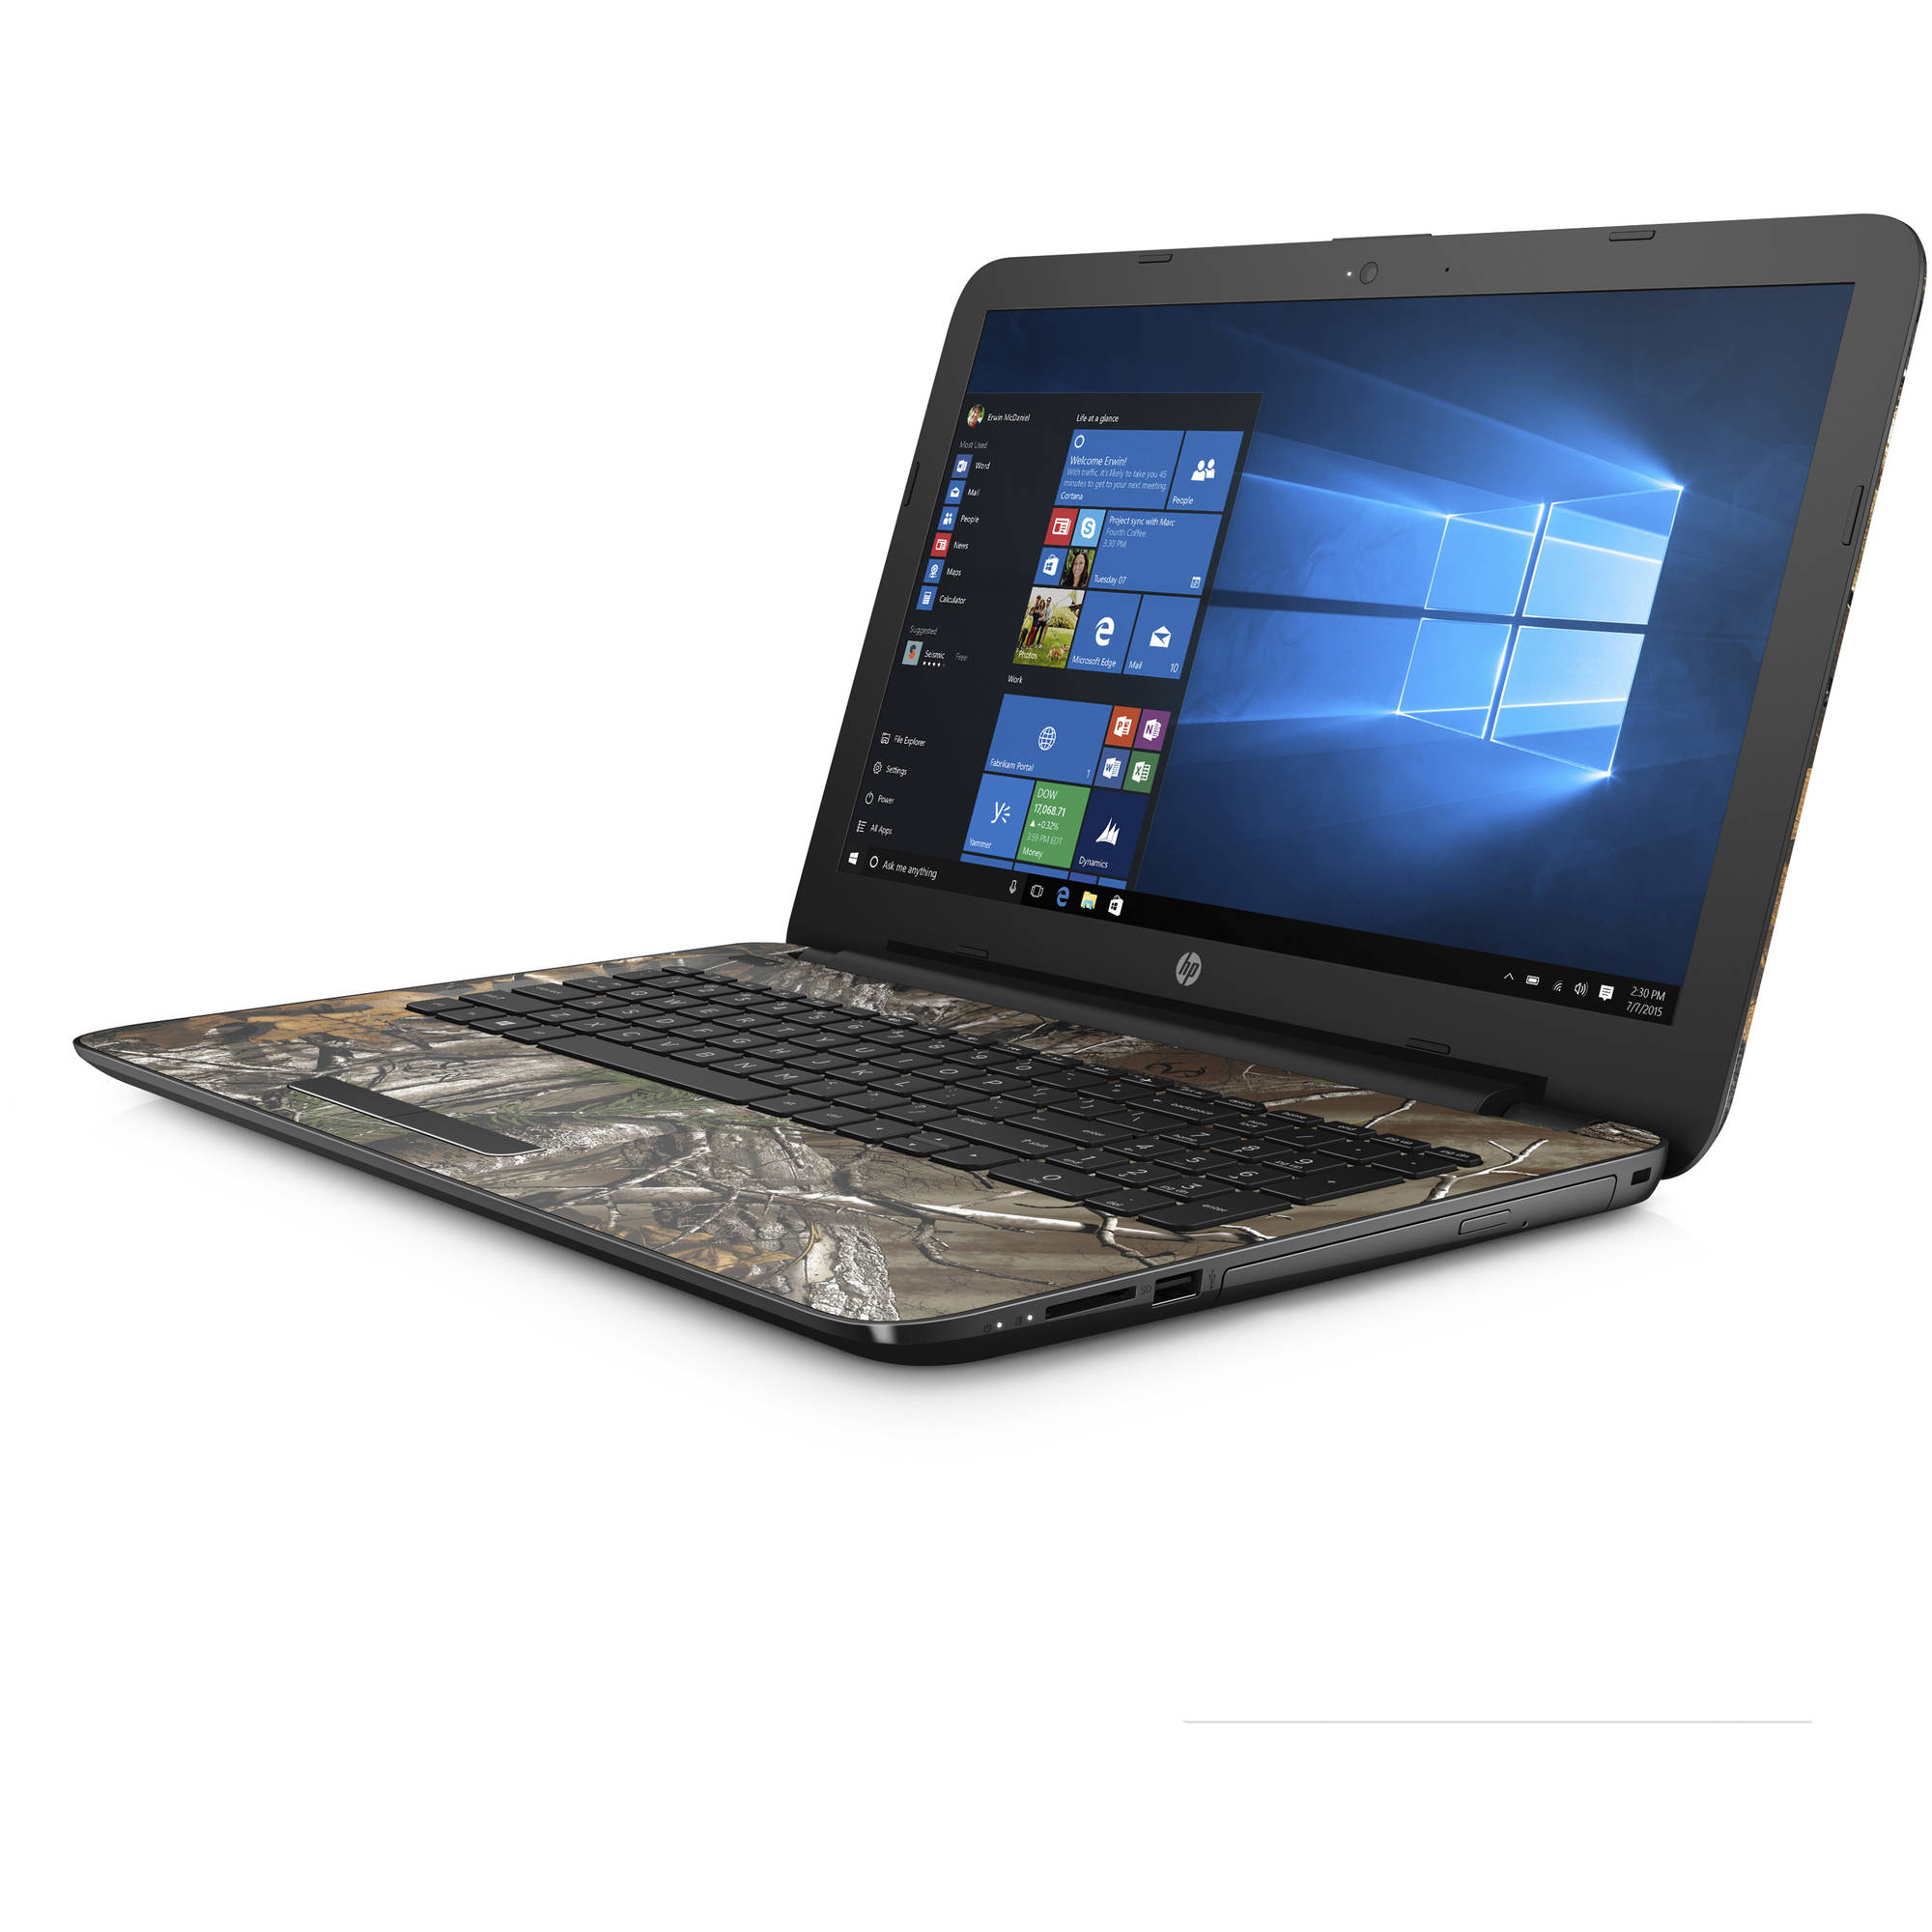 "HP 15-bn070wm 15.6"" Laptop, Windows 10 Home, Intel Pentium N3710 Quad-Core Processor, 4GB Memory, 1TB Hard Drive"